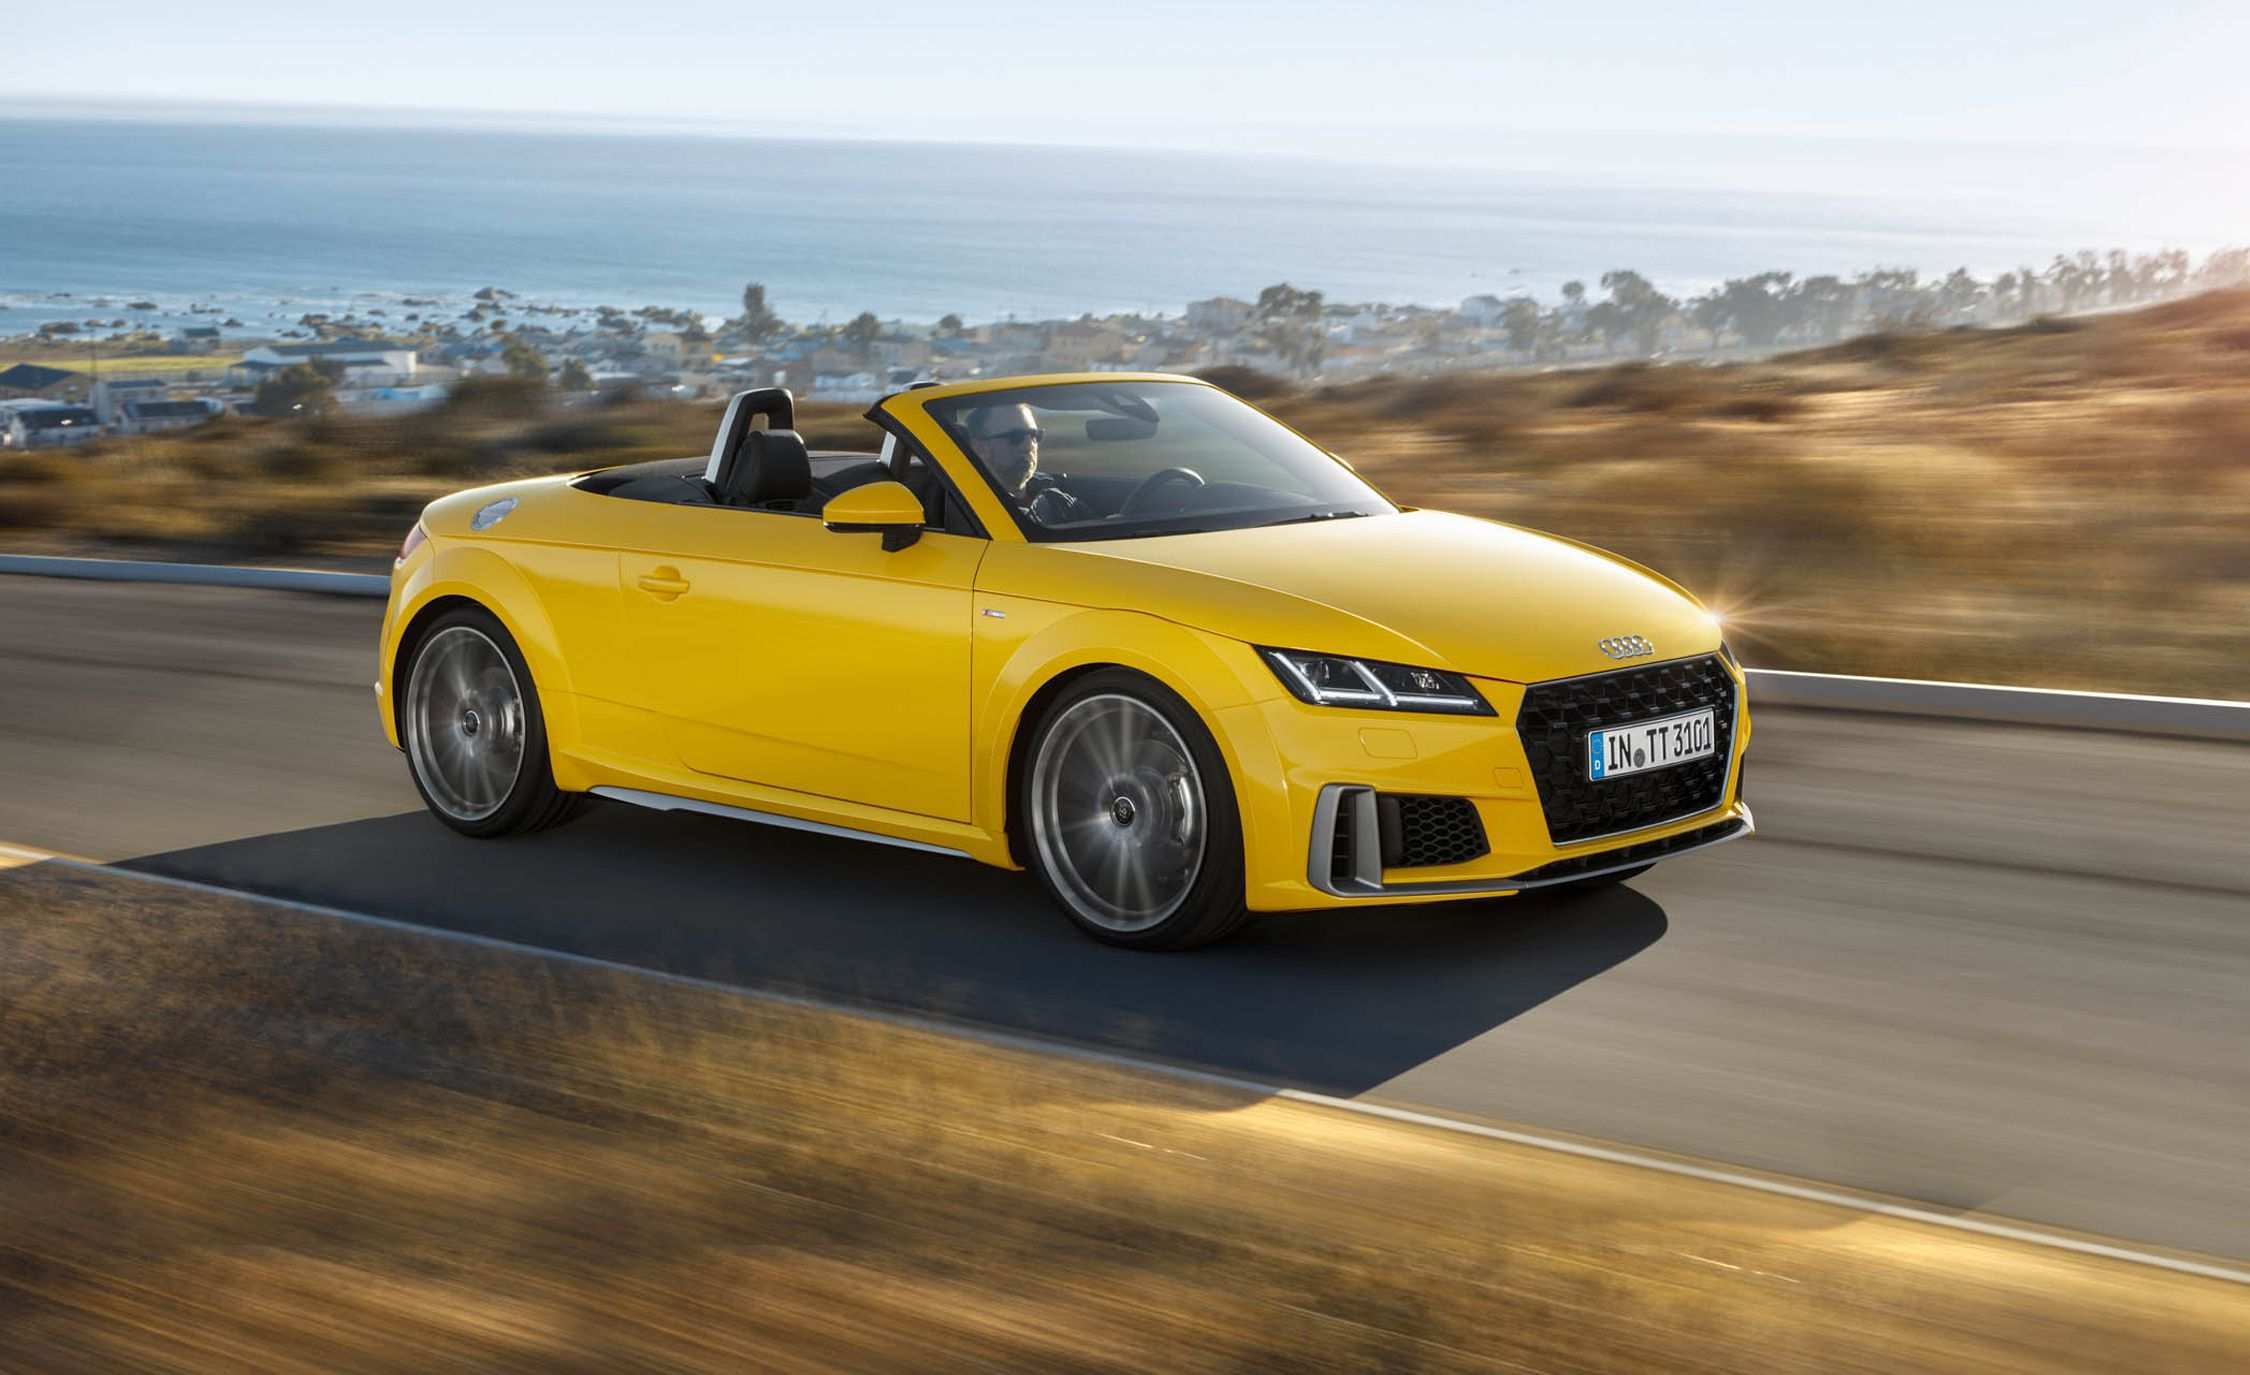 18 All New 2019 Audi Tt Release Date Spy Shoot for 2019 Audi Tt Release Date